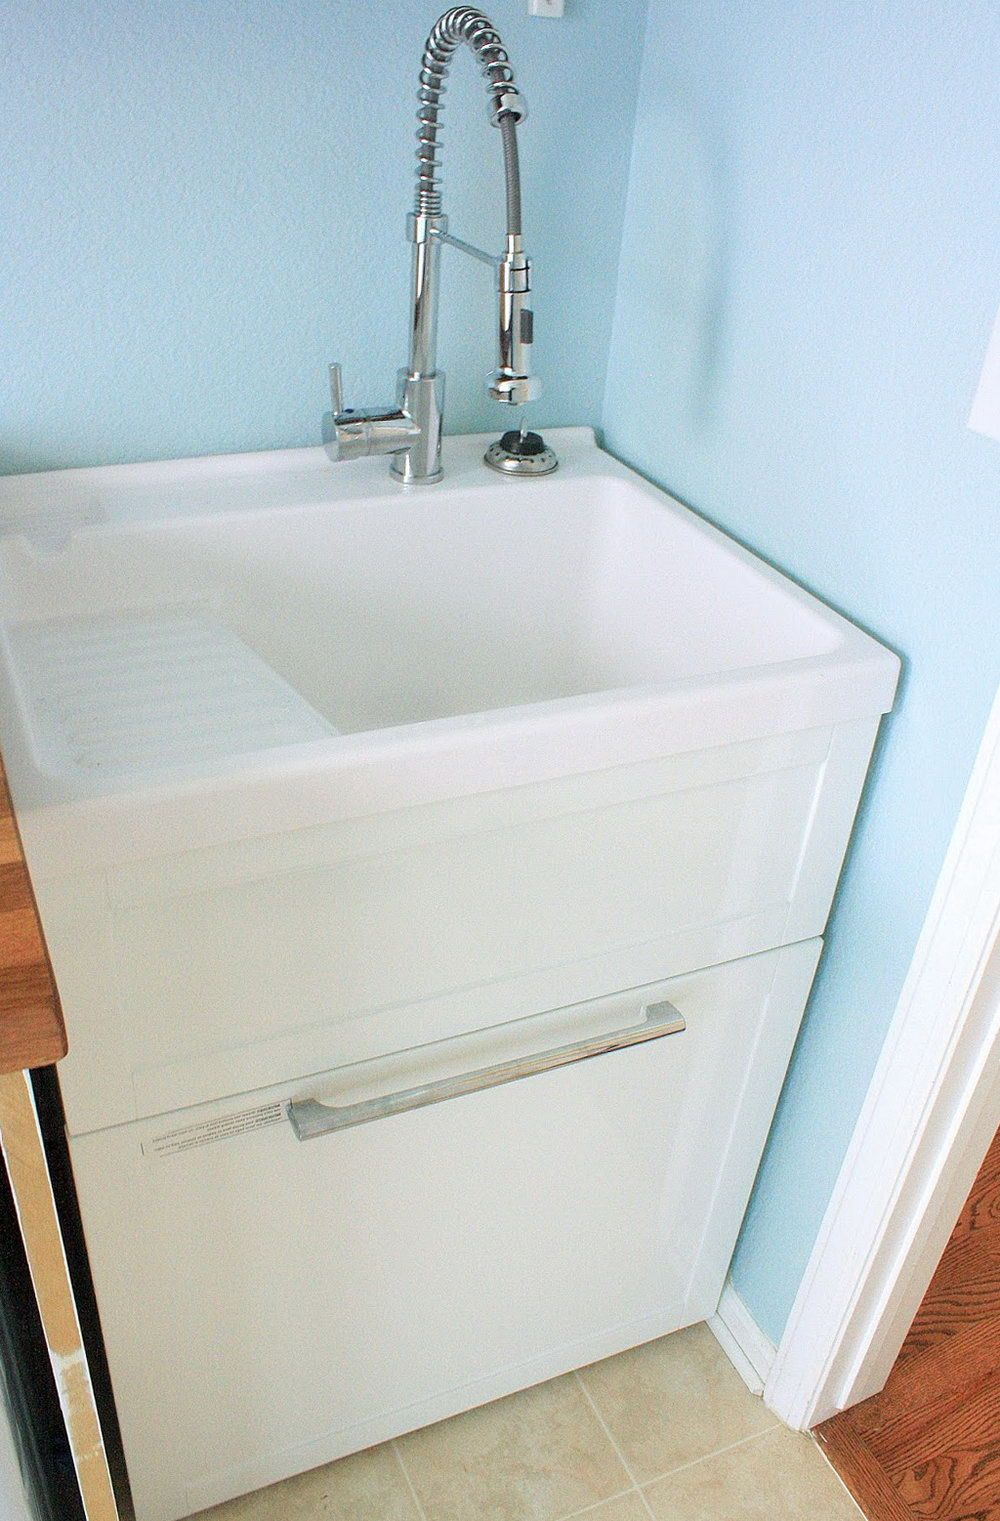 14 Basement Laundry Room ideas for Small Space (Makeovers) | Laundry ...